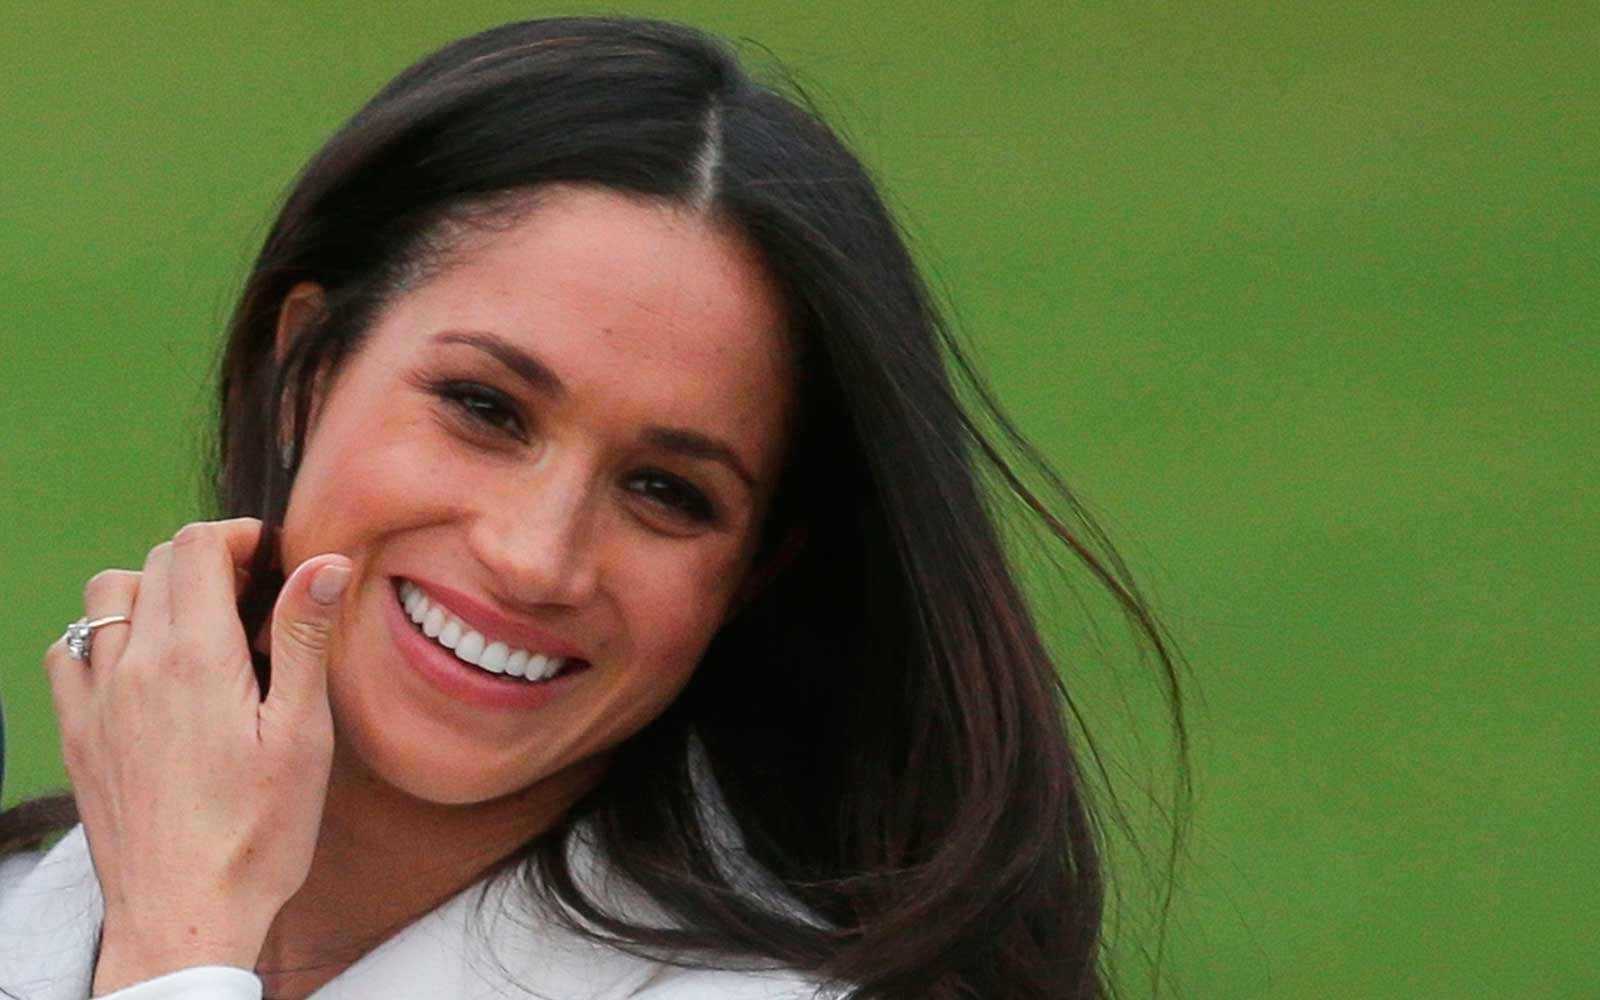 This Photo of 15-year-old Meghan Markle at Buckingham Palace Proves Dreams Do Come True